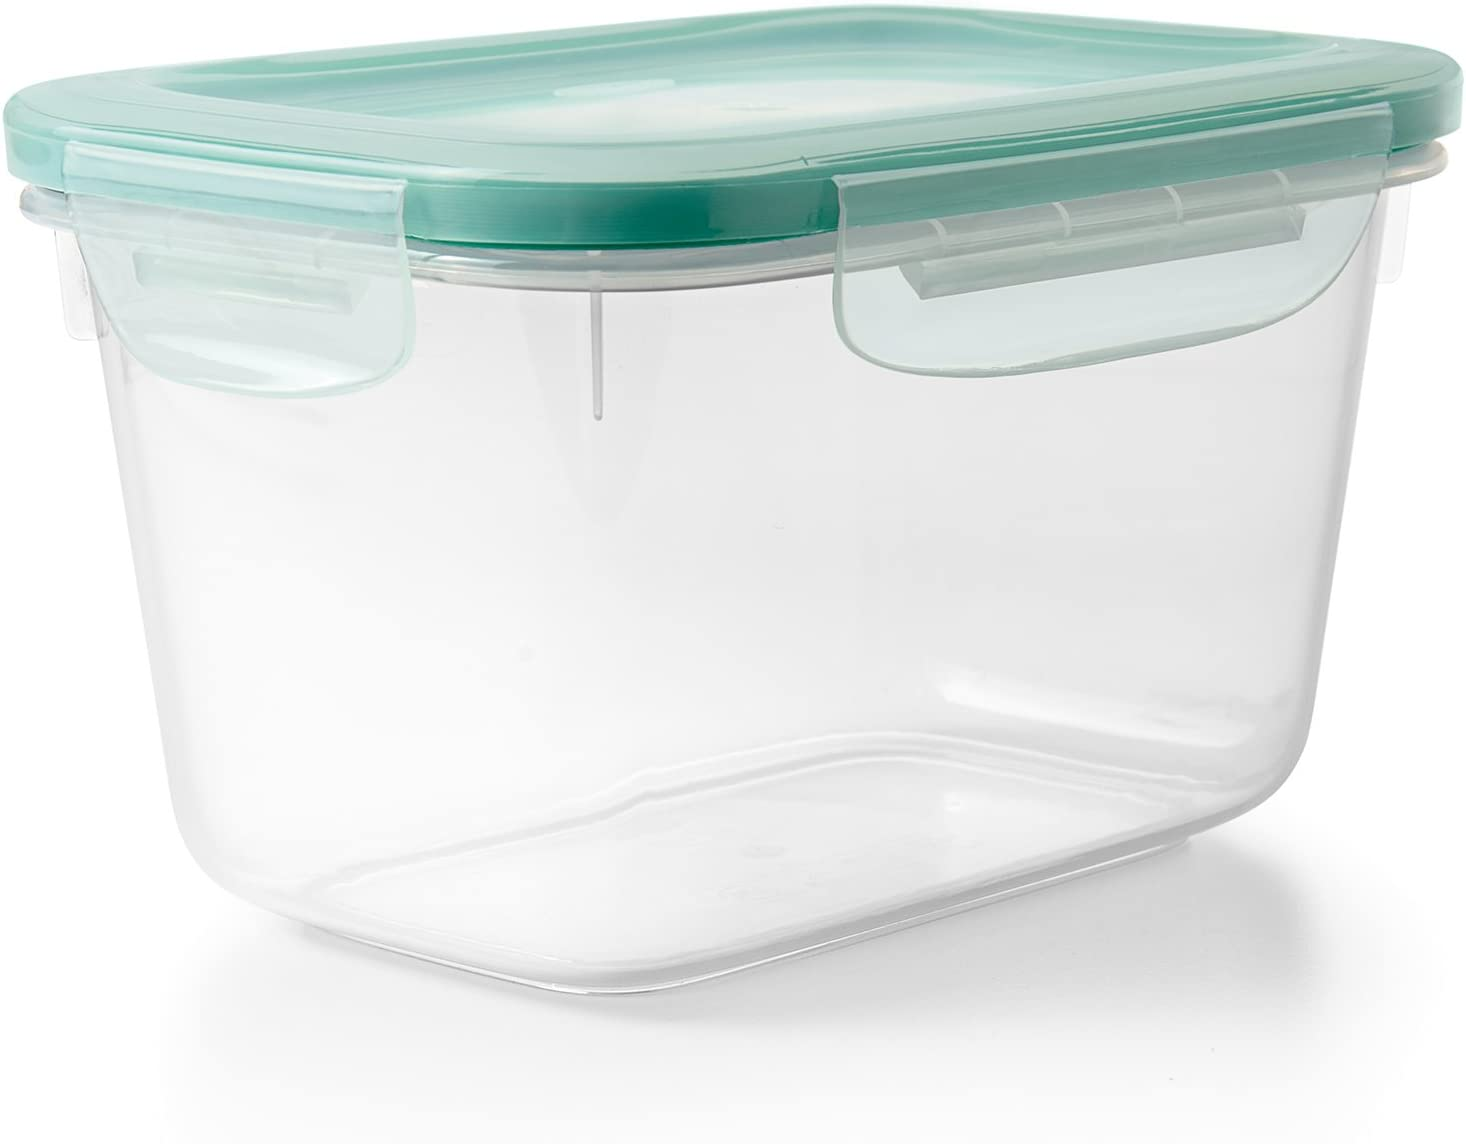 OXO Good Grips 6.2 Cup Smart Seal Leakproof Food Storage Container